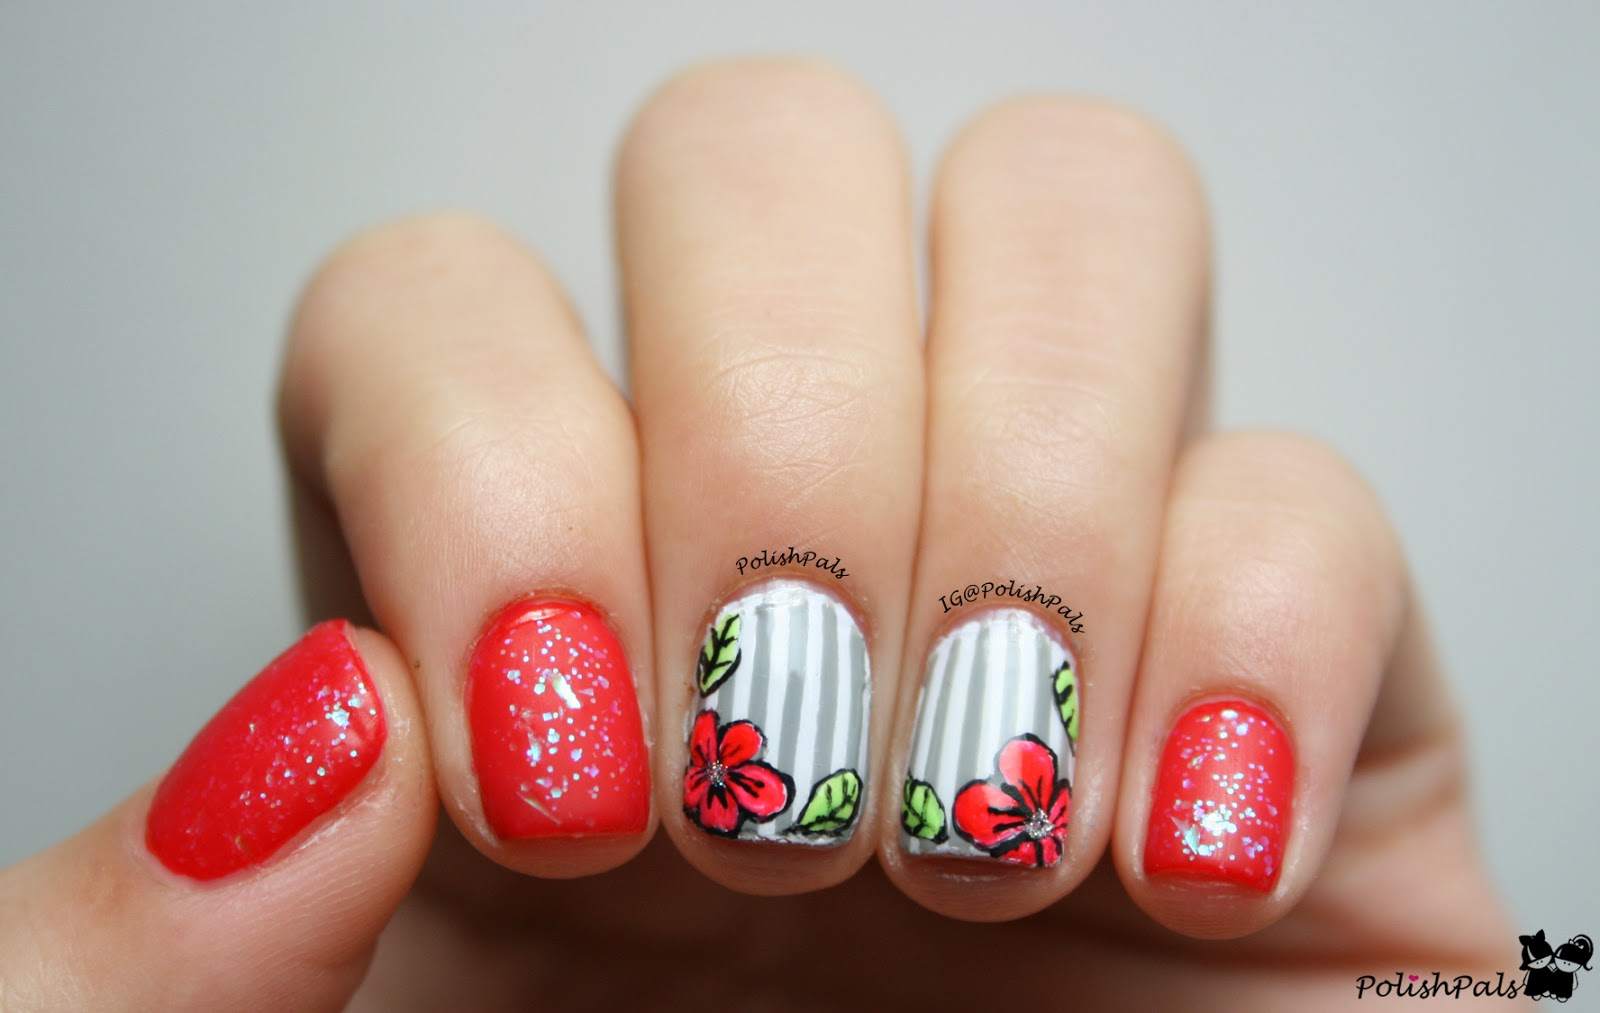 Polish Pals: Time For Red Floral